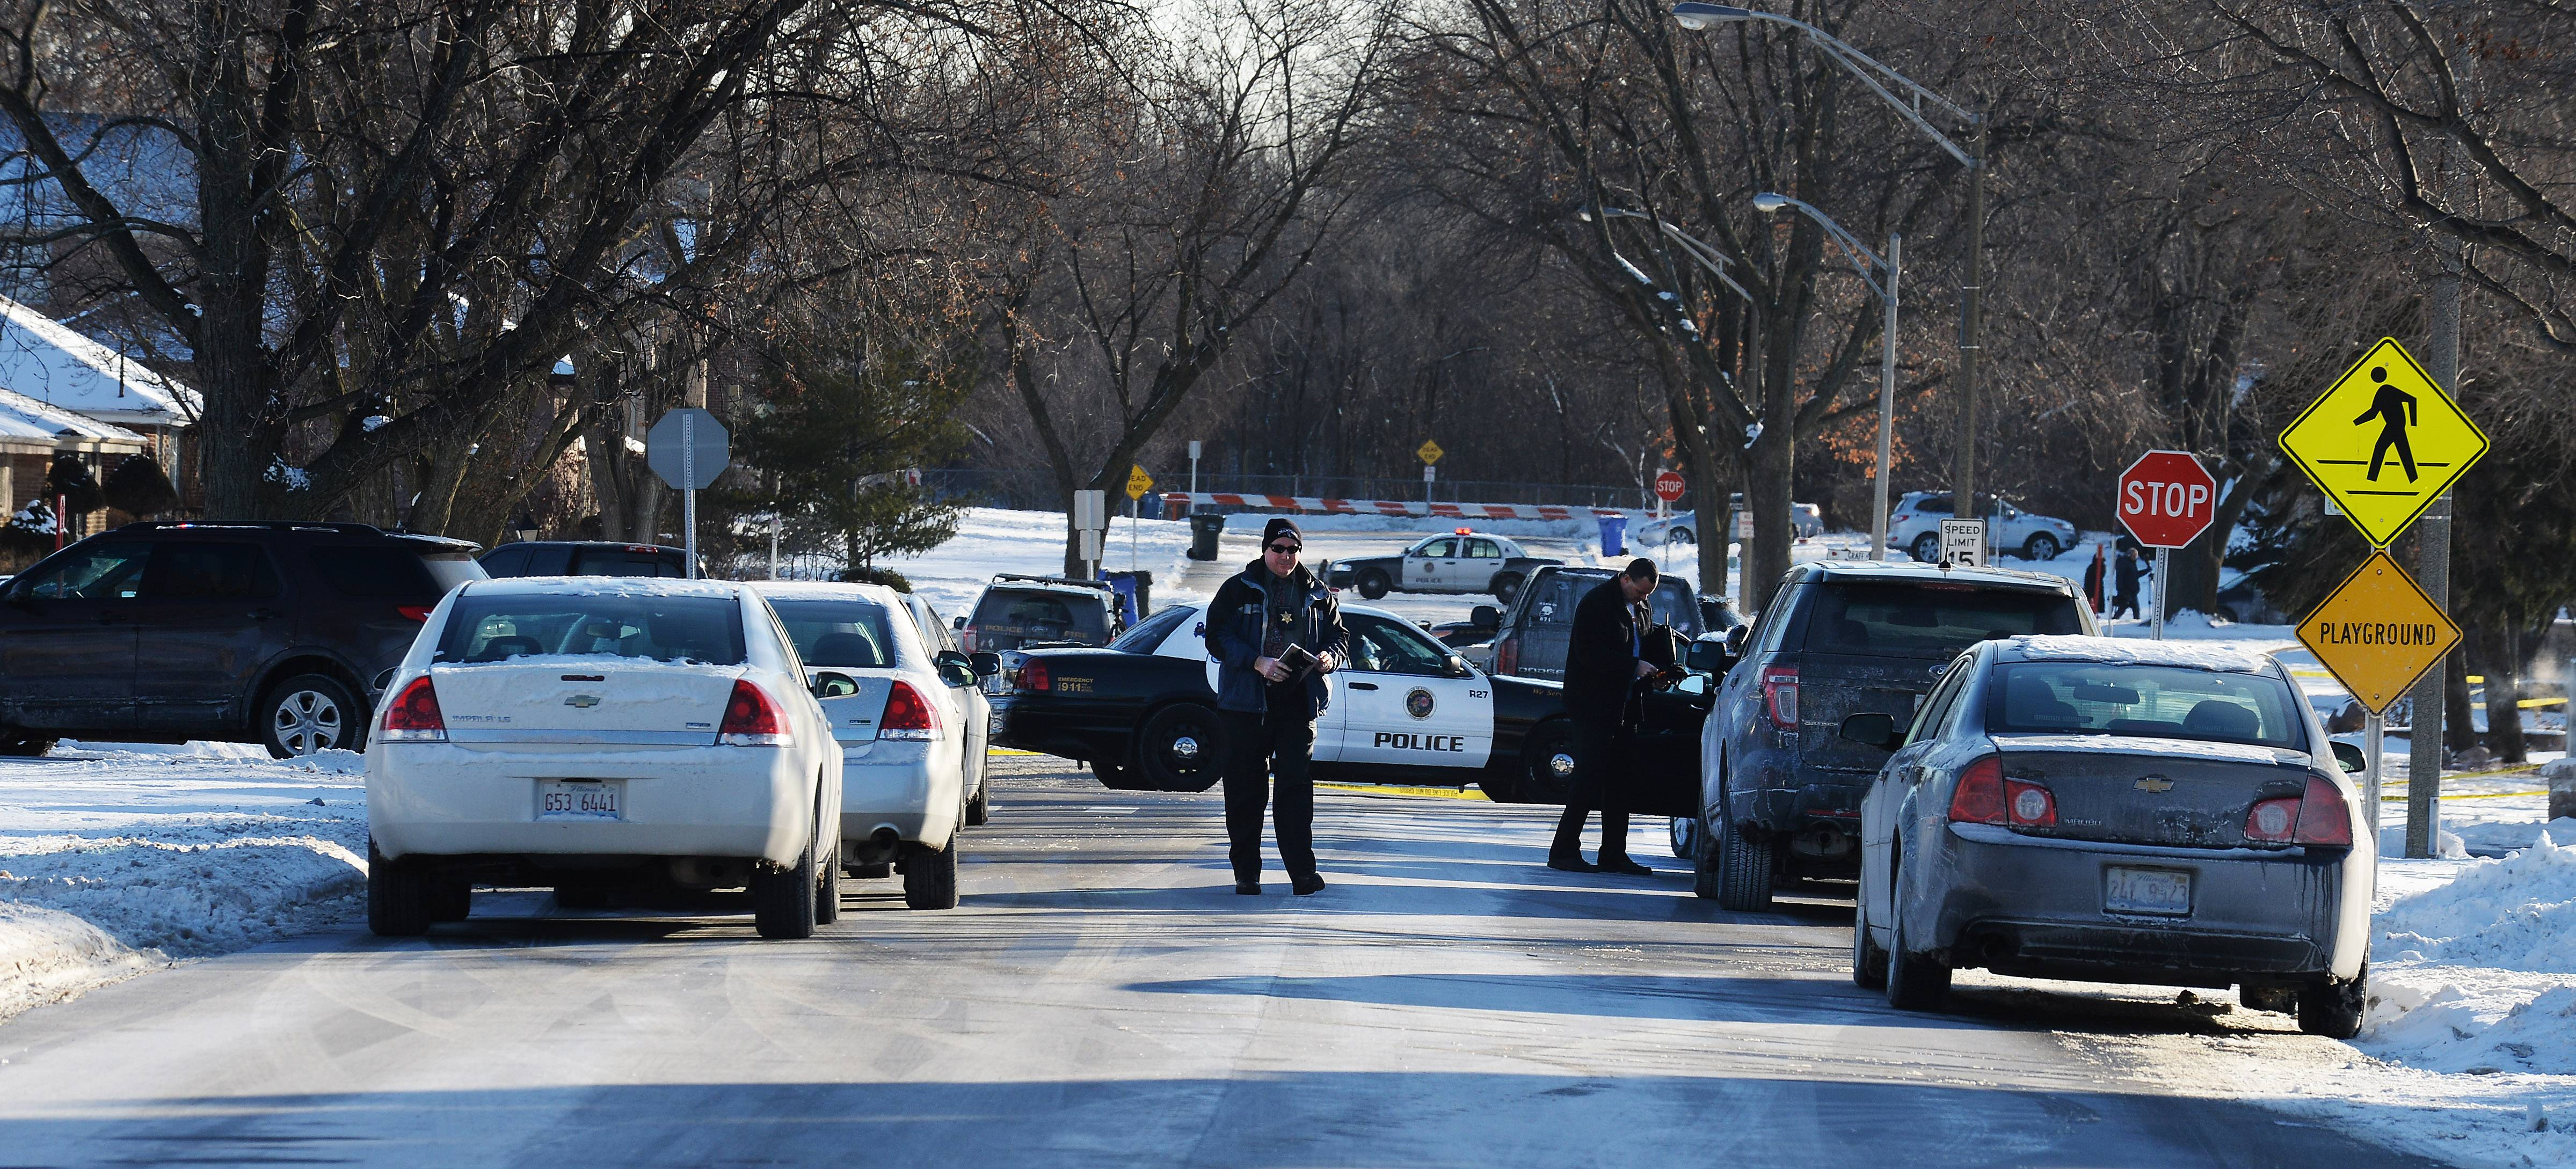 "Off-duty Rosemont police officer Rick Drehobl, after shooting his brother-in-law Joseph Caffarello on the streets of the village's gated community Jan. 7, told his colleagues he ""had to do it"" because he feared for his life."